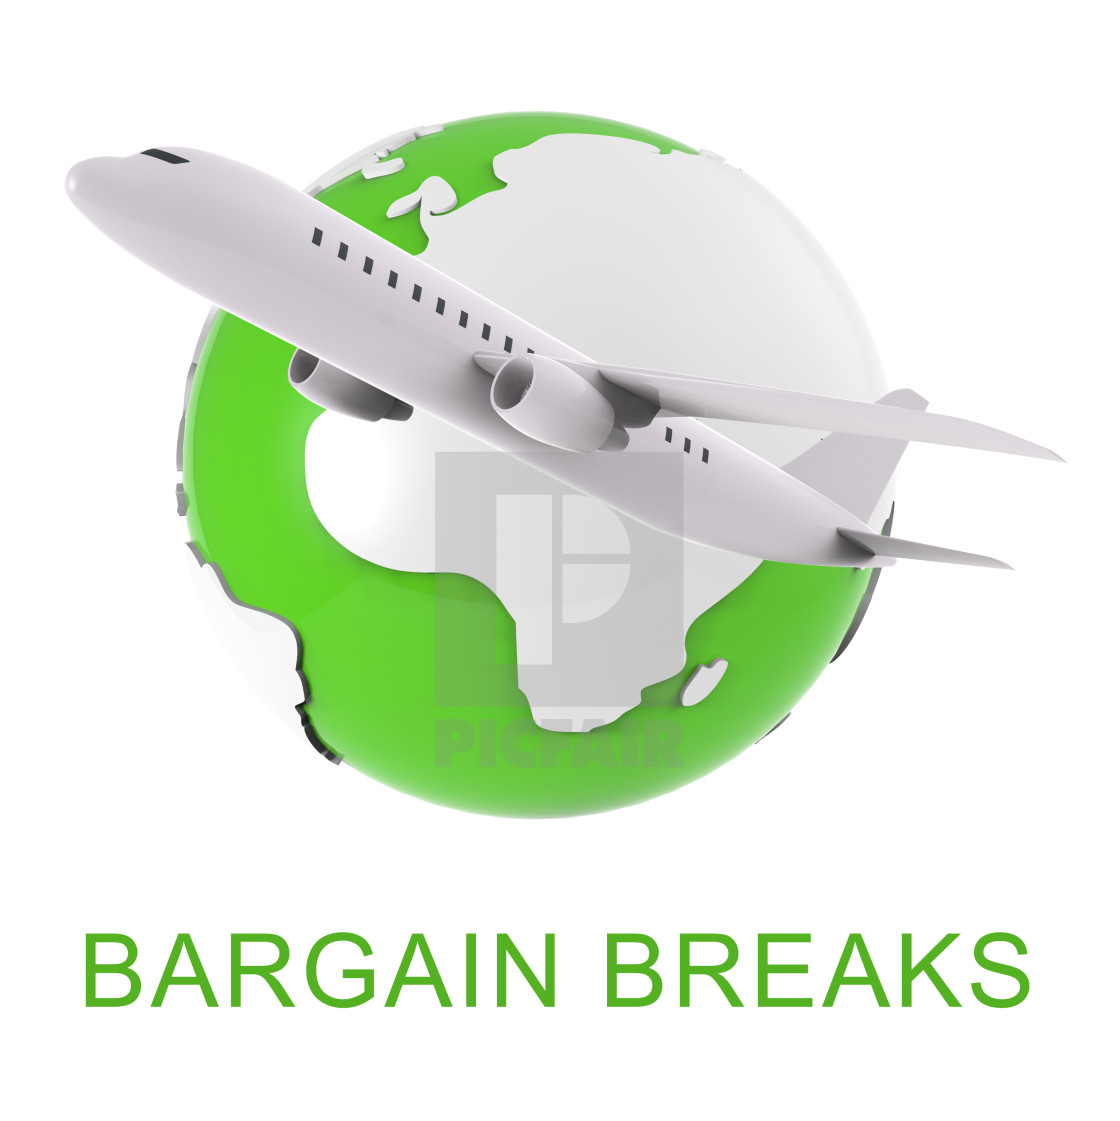 """Bargain Breaks Shows Short Holiday 3d Rendering"" stock image"